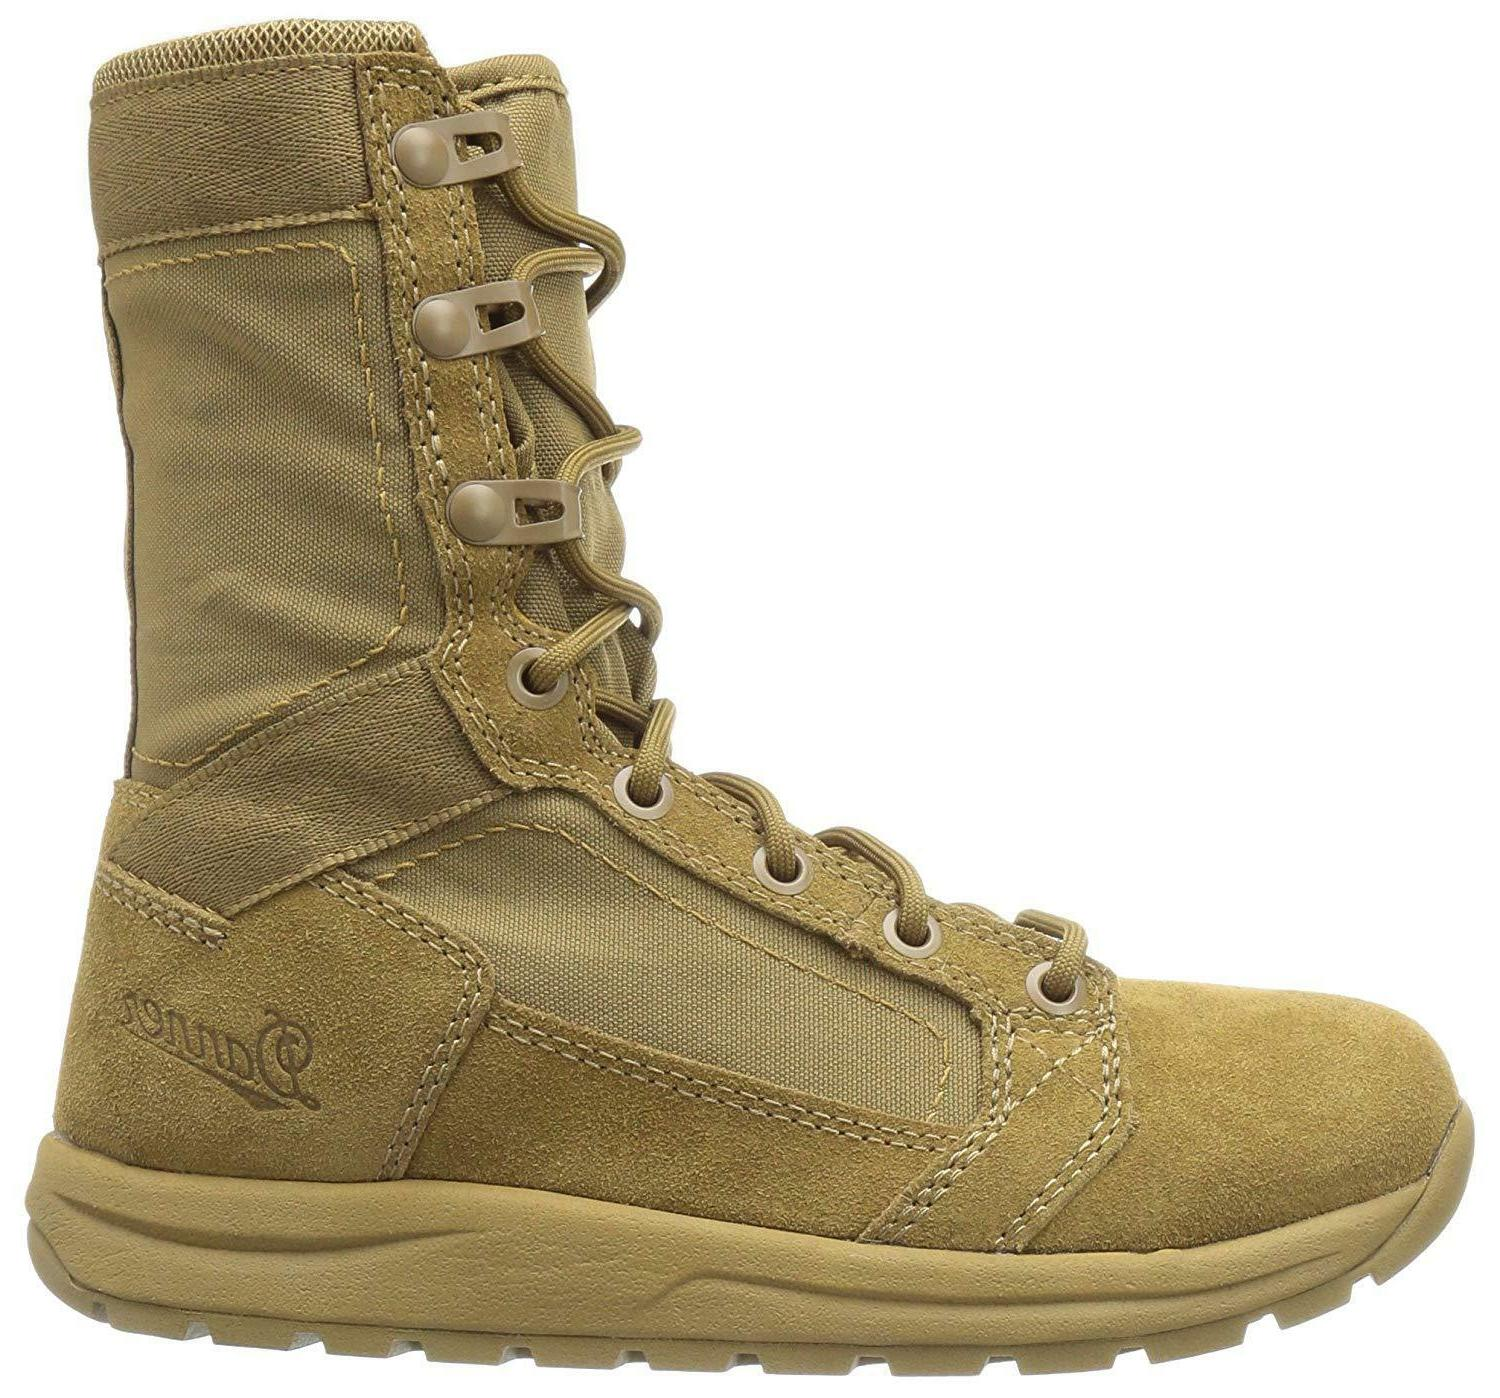 Danner Tachyon 8 inch Coyote Tactical Boot